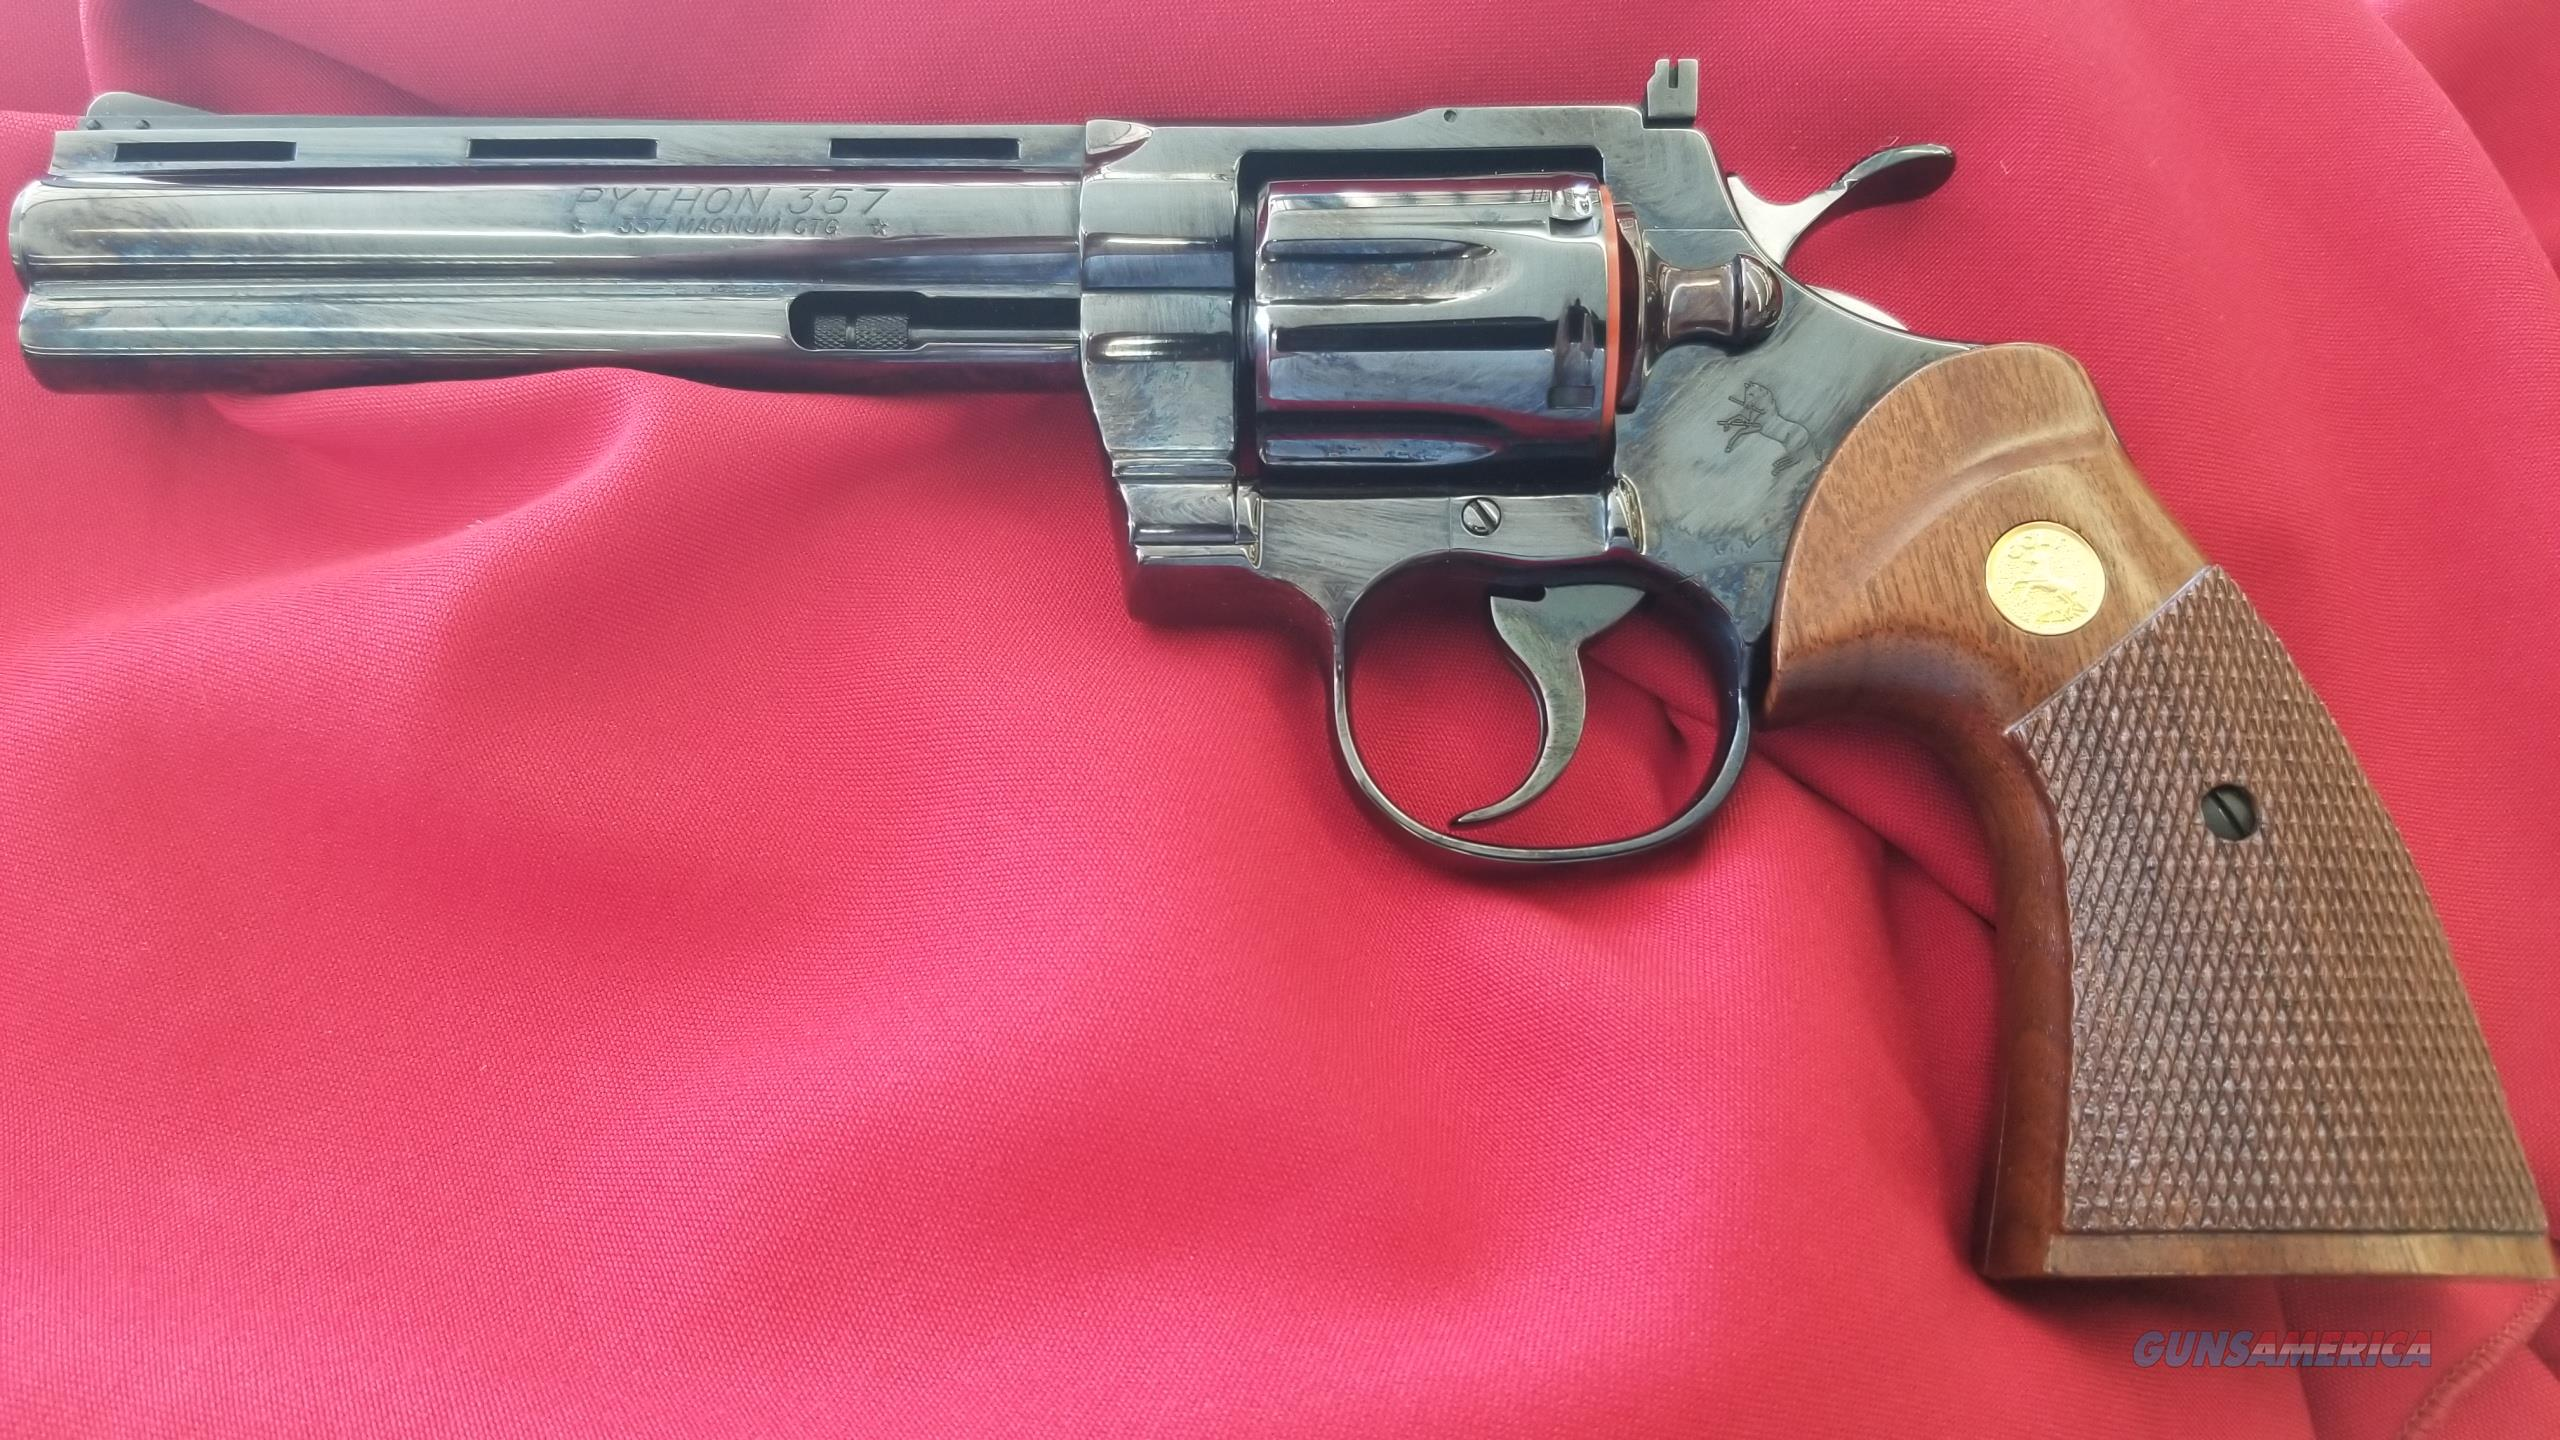 "Pre Owned Colt Python 6 "" Barrel in .357 Magnum w/ Box and Paperwork  Guns > Pistols > Colt Double Action Revolvers- Modern"